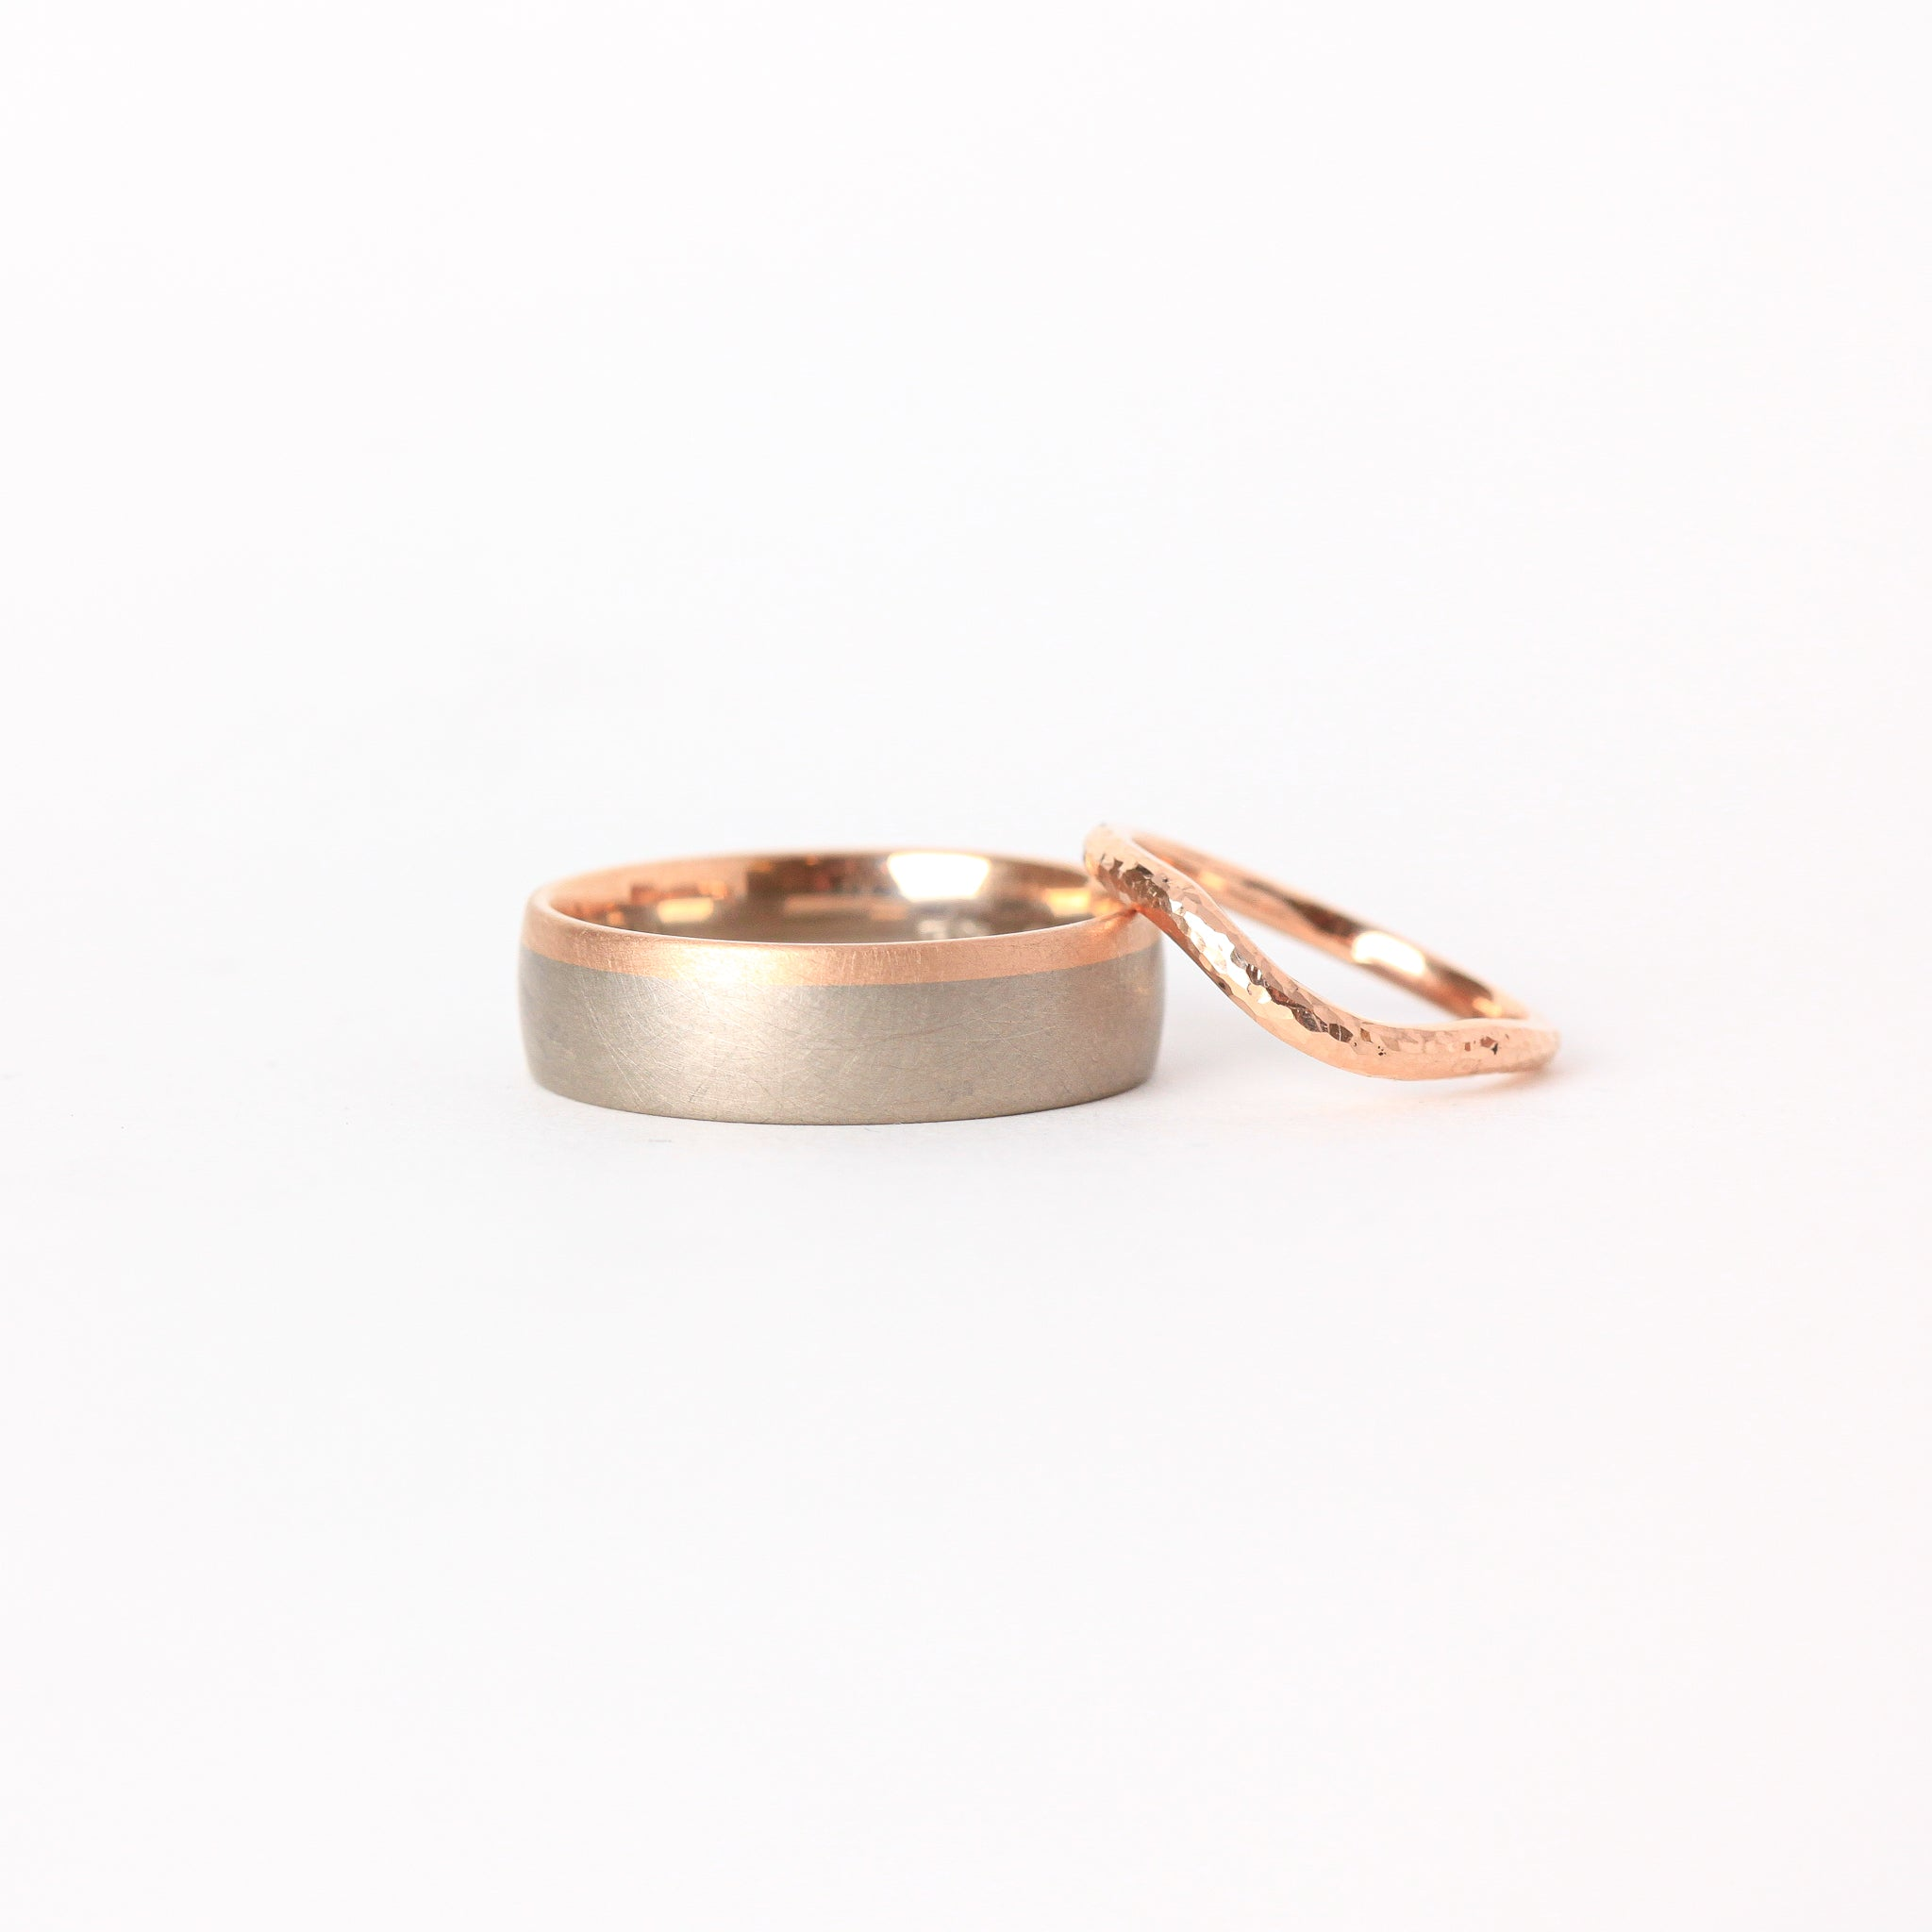 Handmade 18ct Rose Gold Curved Wedding Band